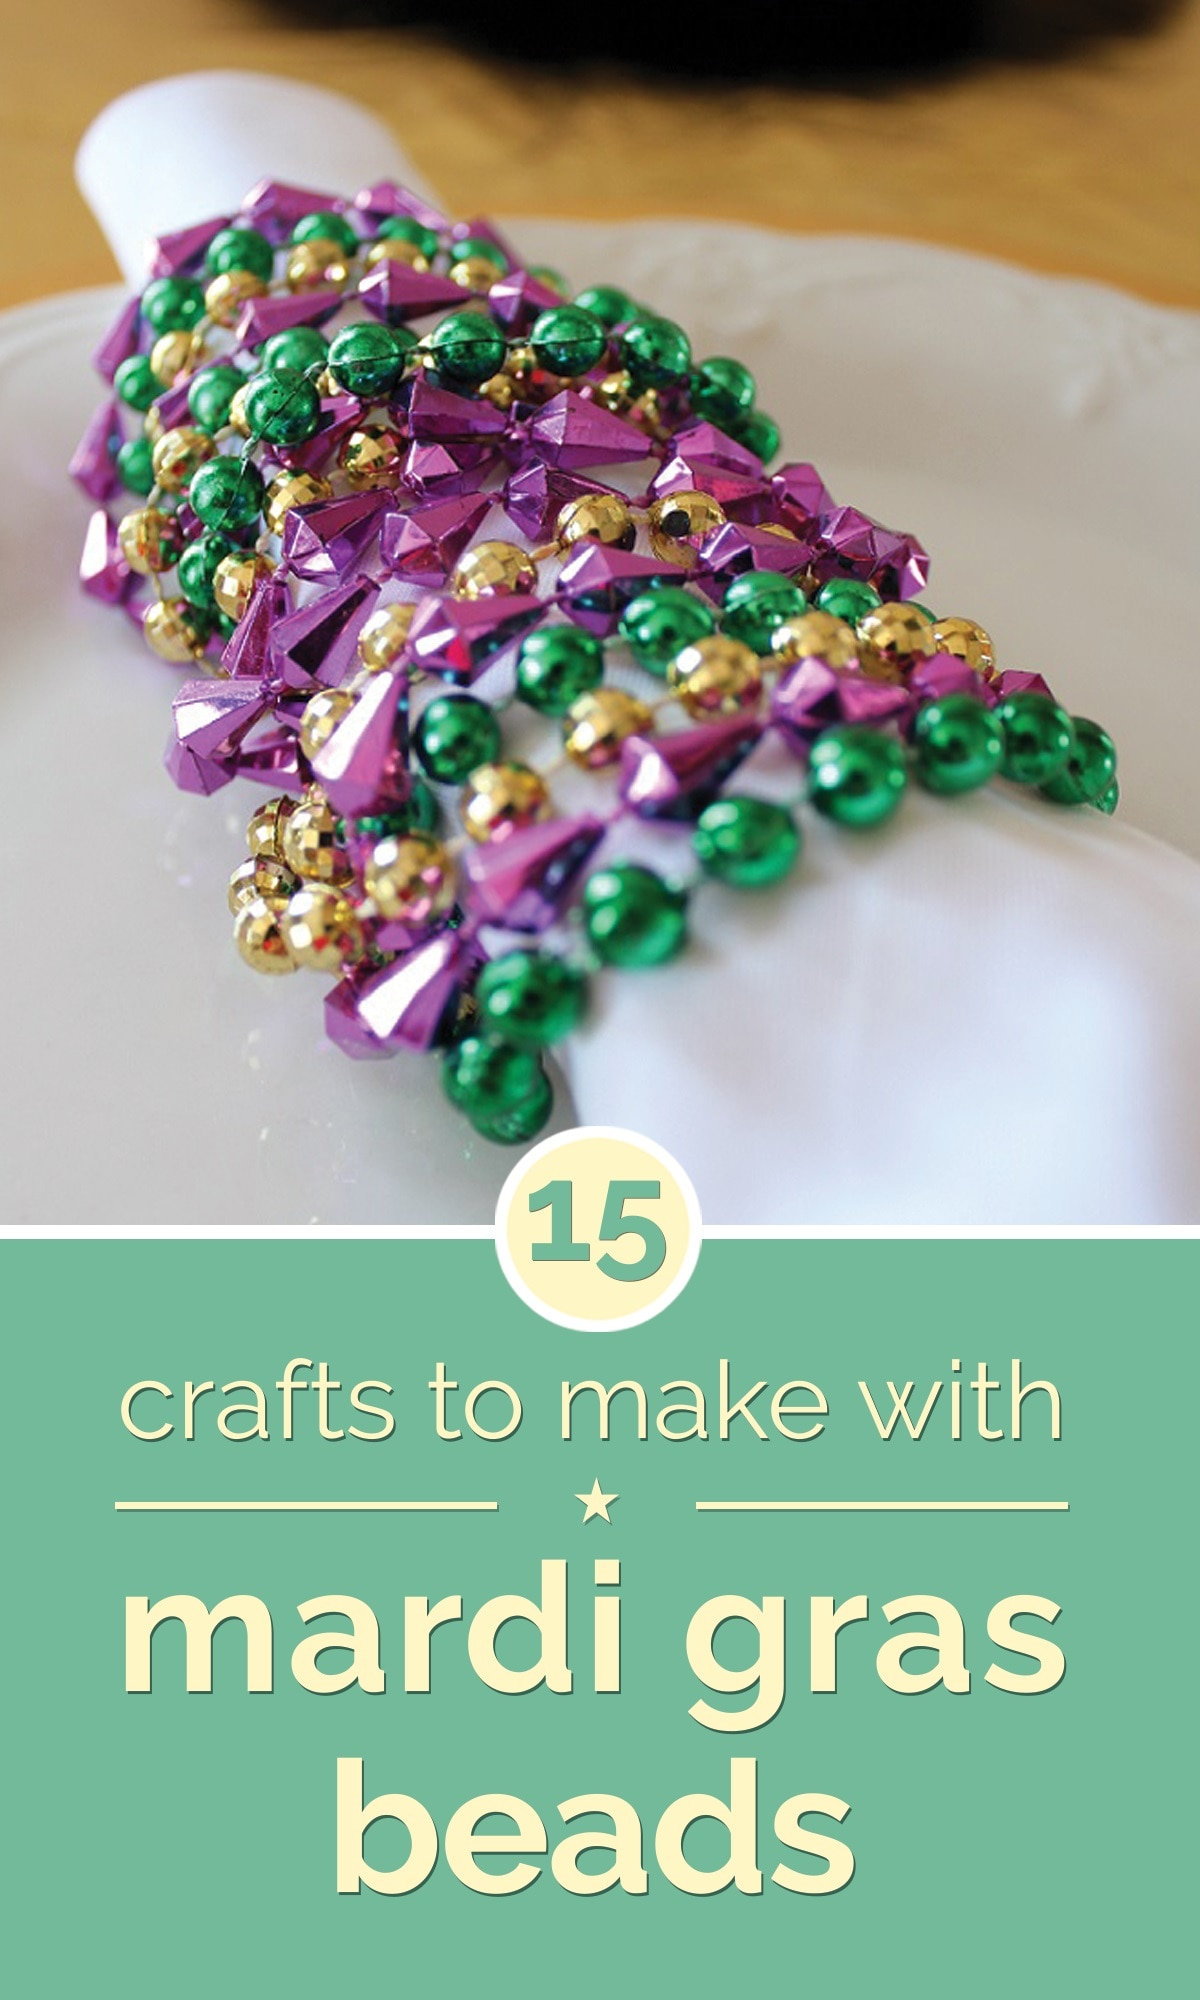 diy-mardi-gras-bead-crafts